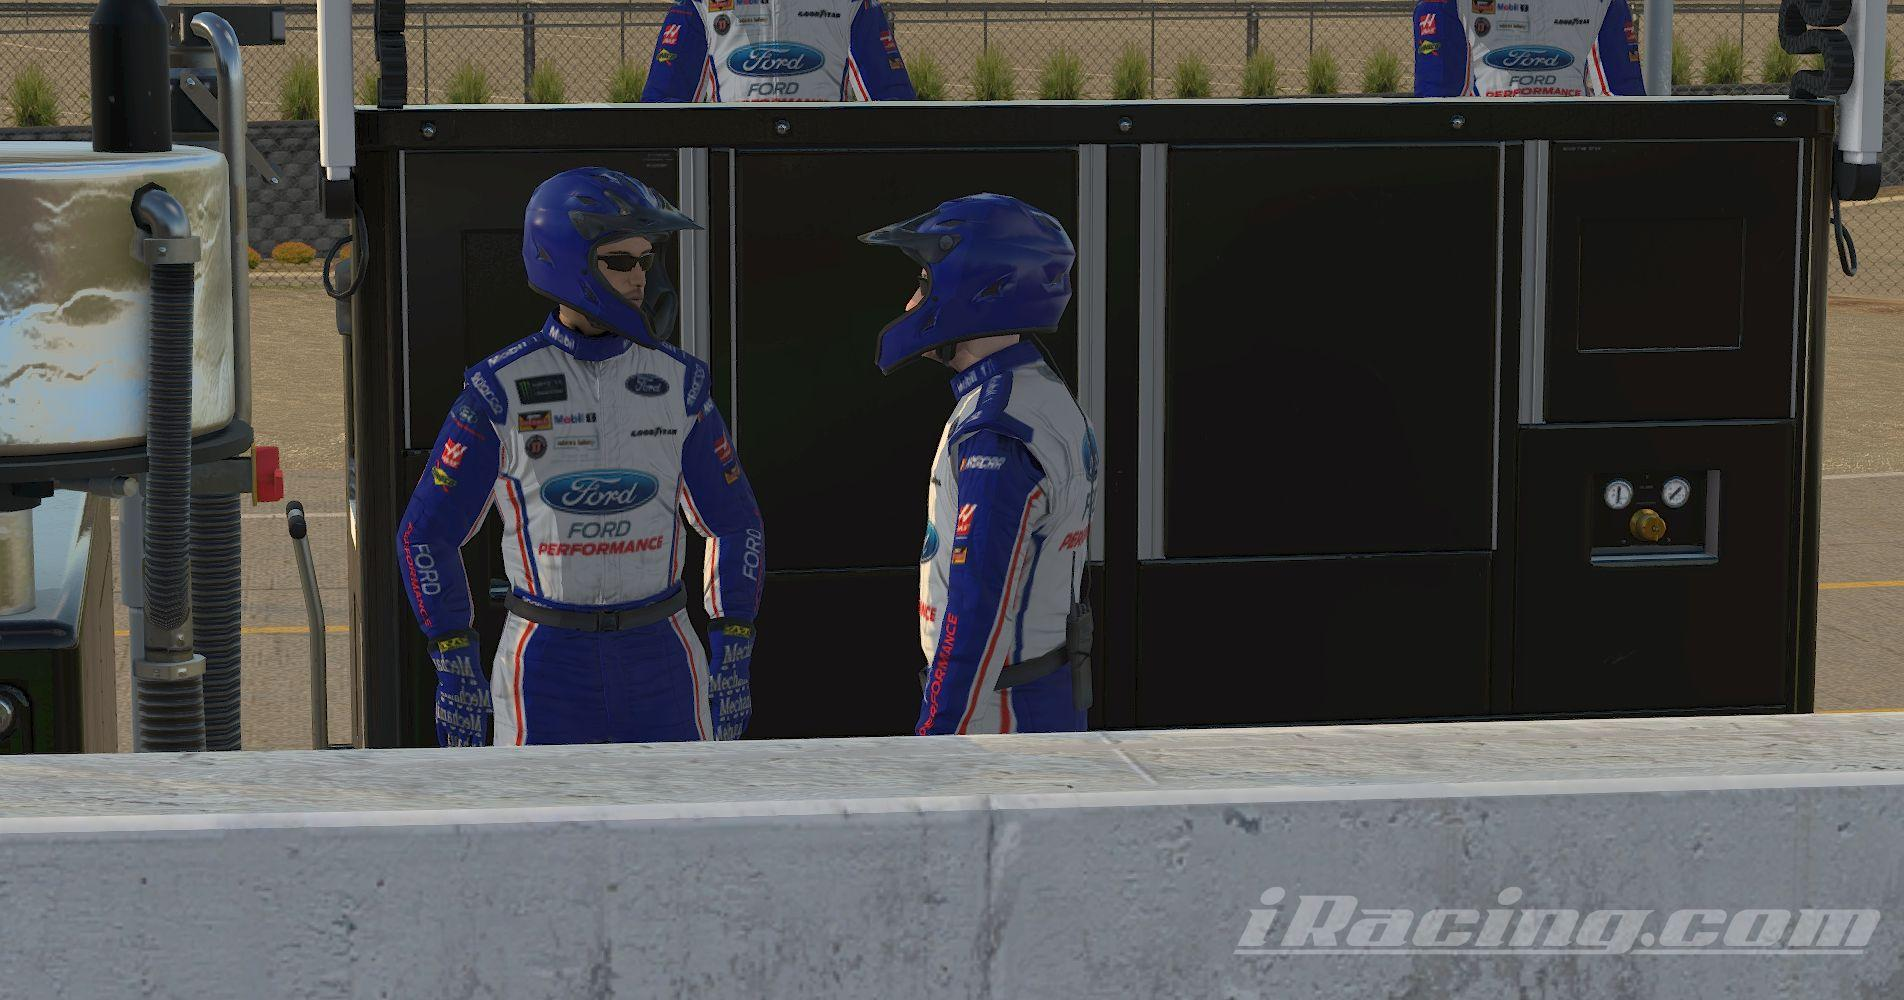 Preview of 2020 Ford Performance Driver Suit by Stephane Parent